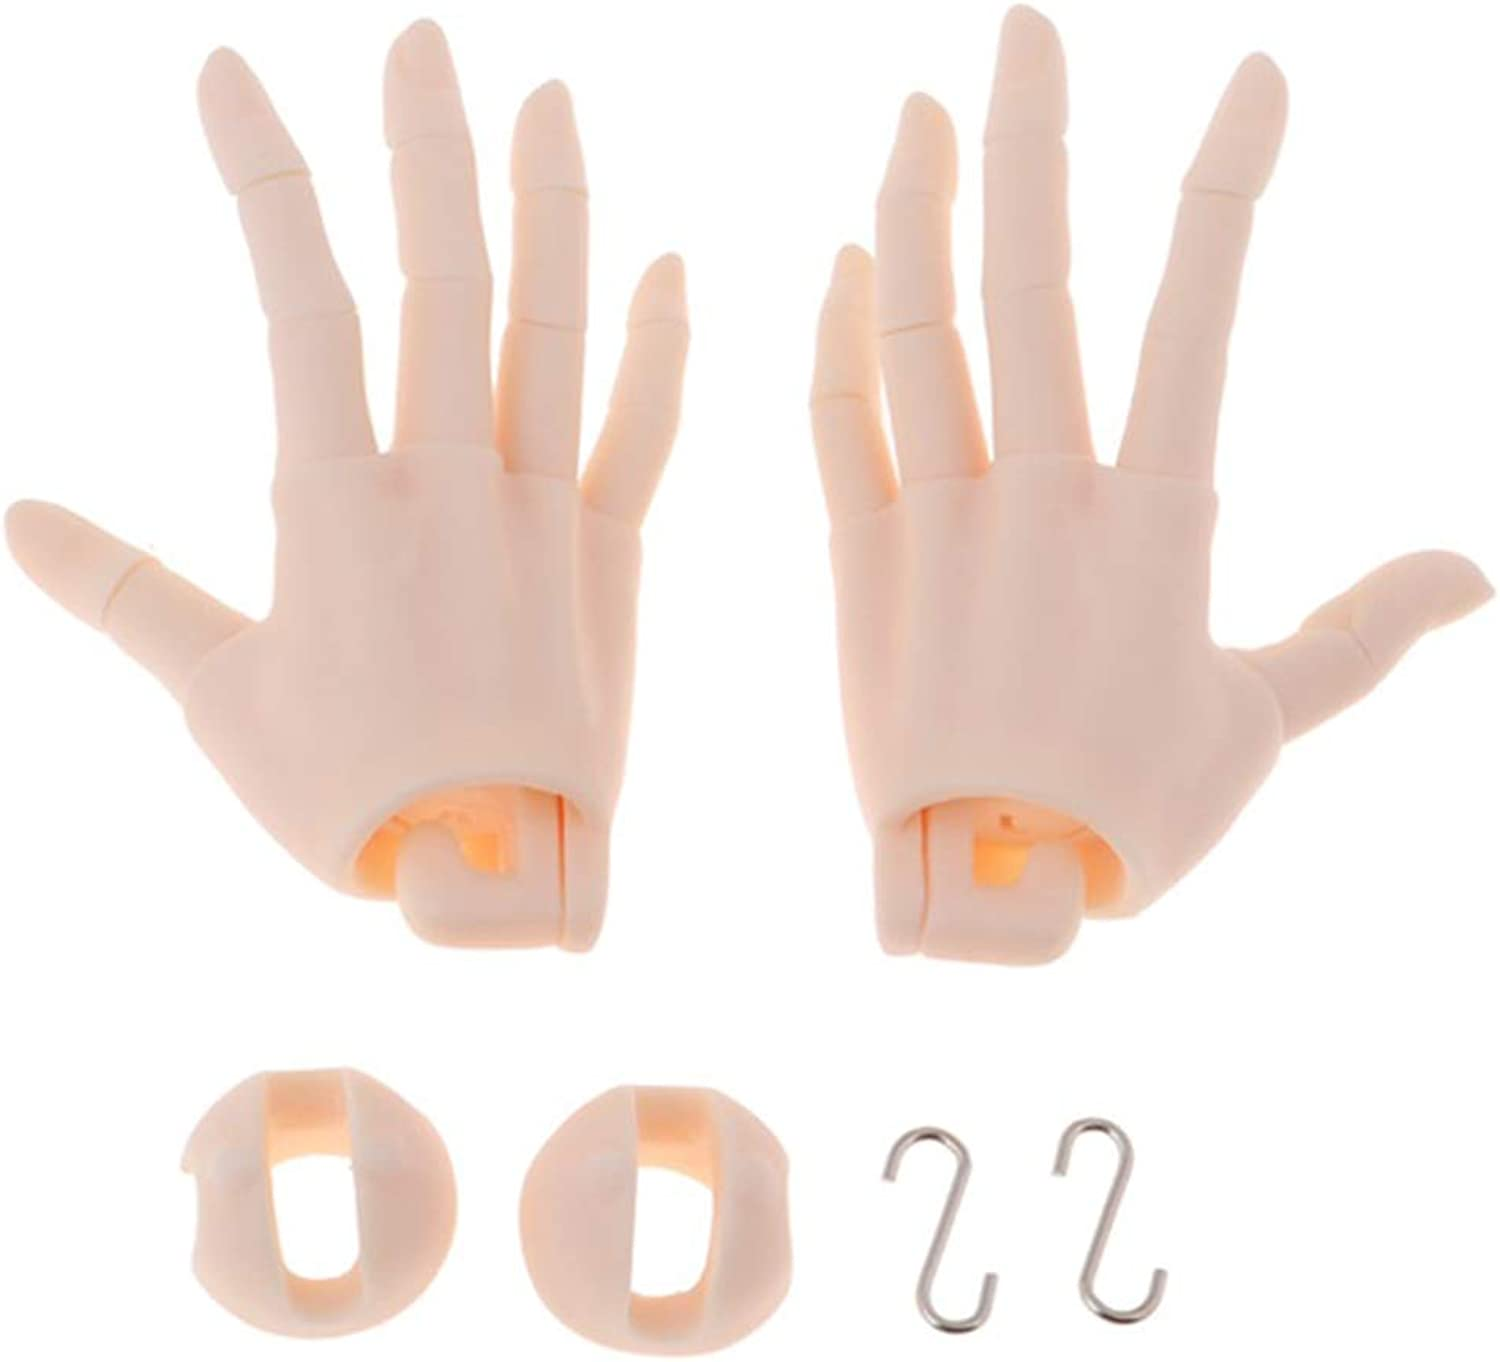 Kesoto 15 Joint Ball Jointed Doll Hands BJD Uncle Hand Model Accessory Pink Skin